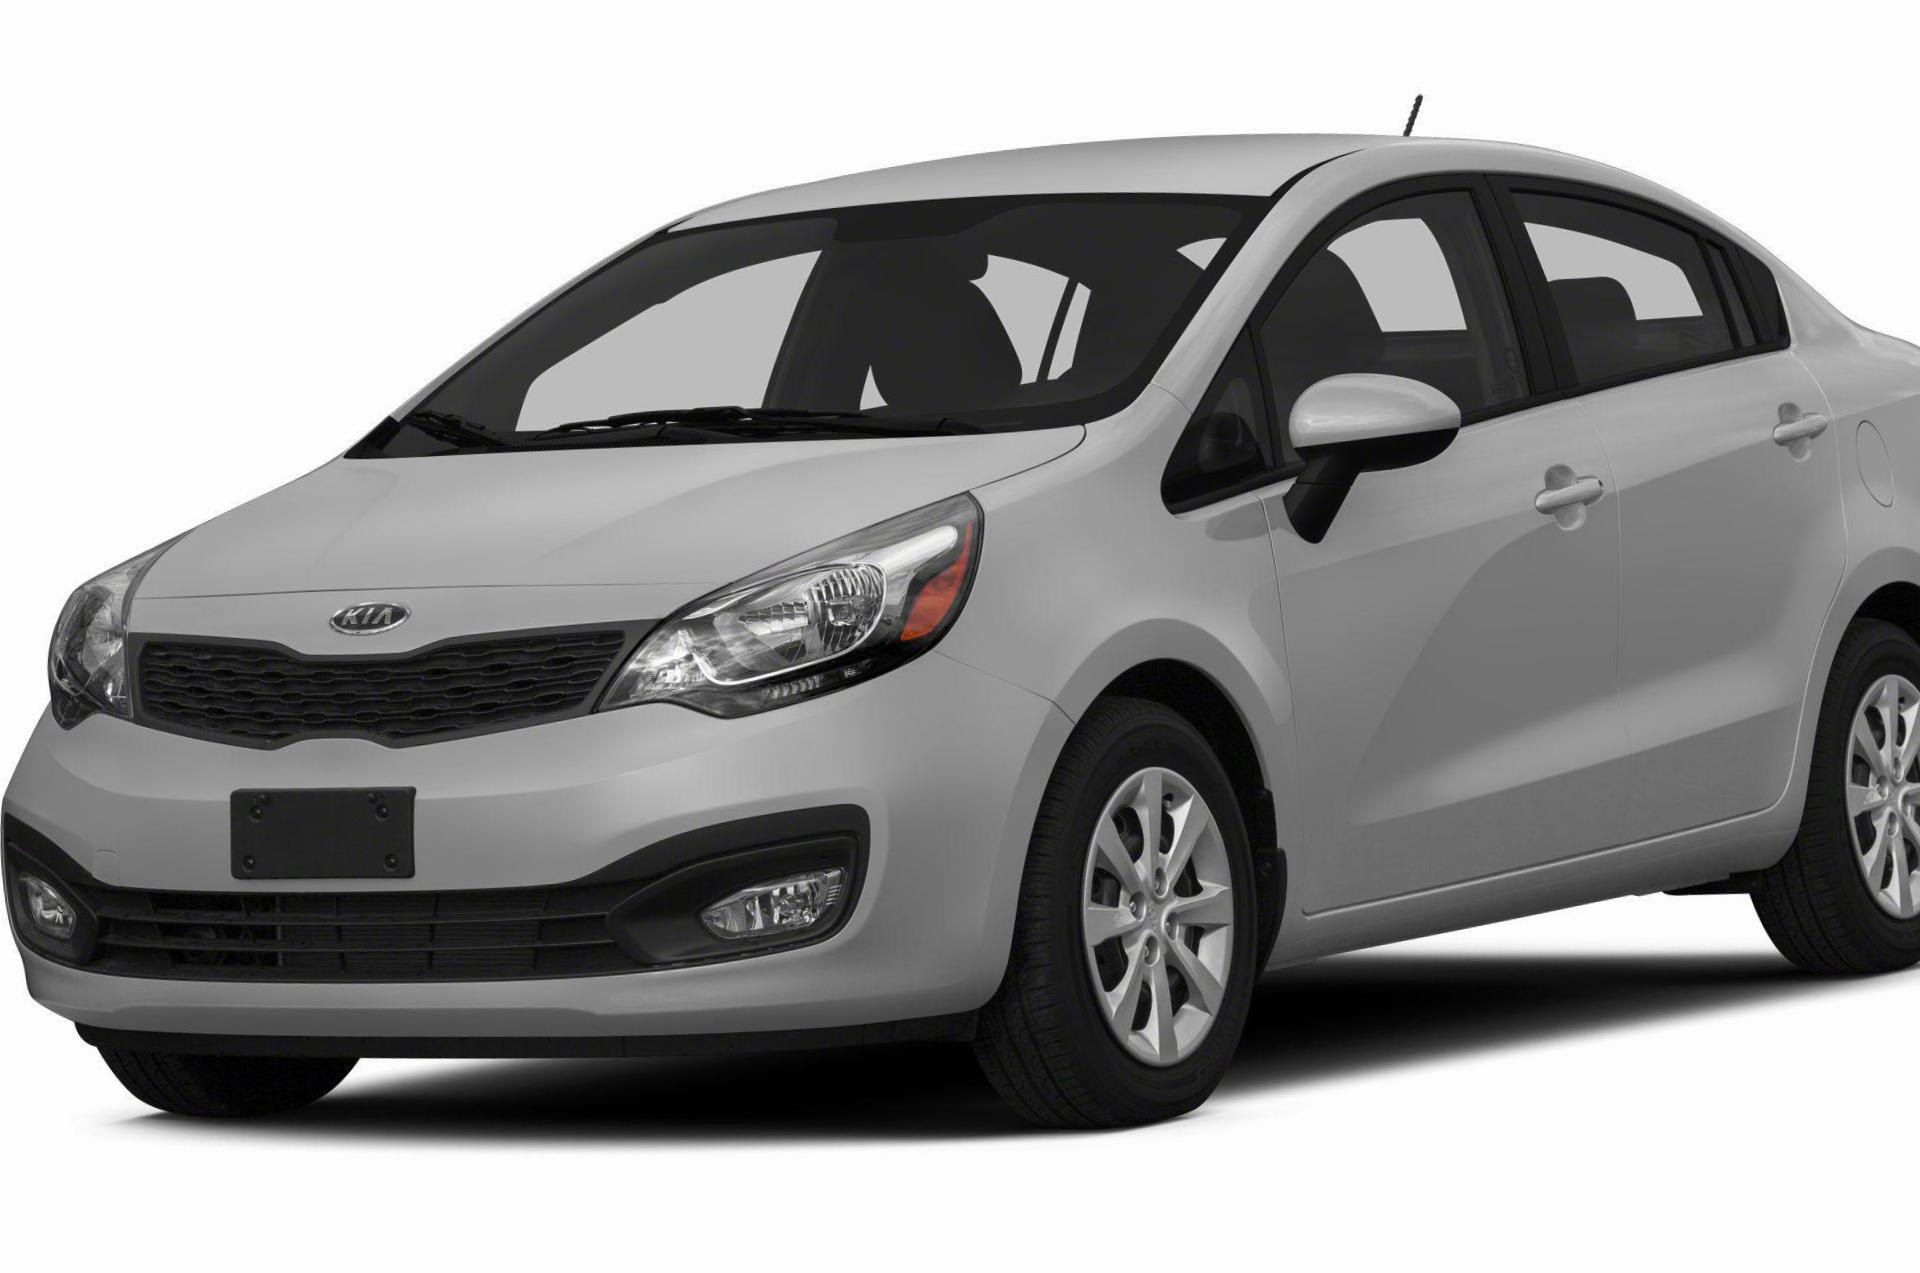 Rio Sedan KIA reviews 2012